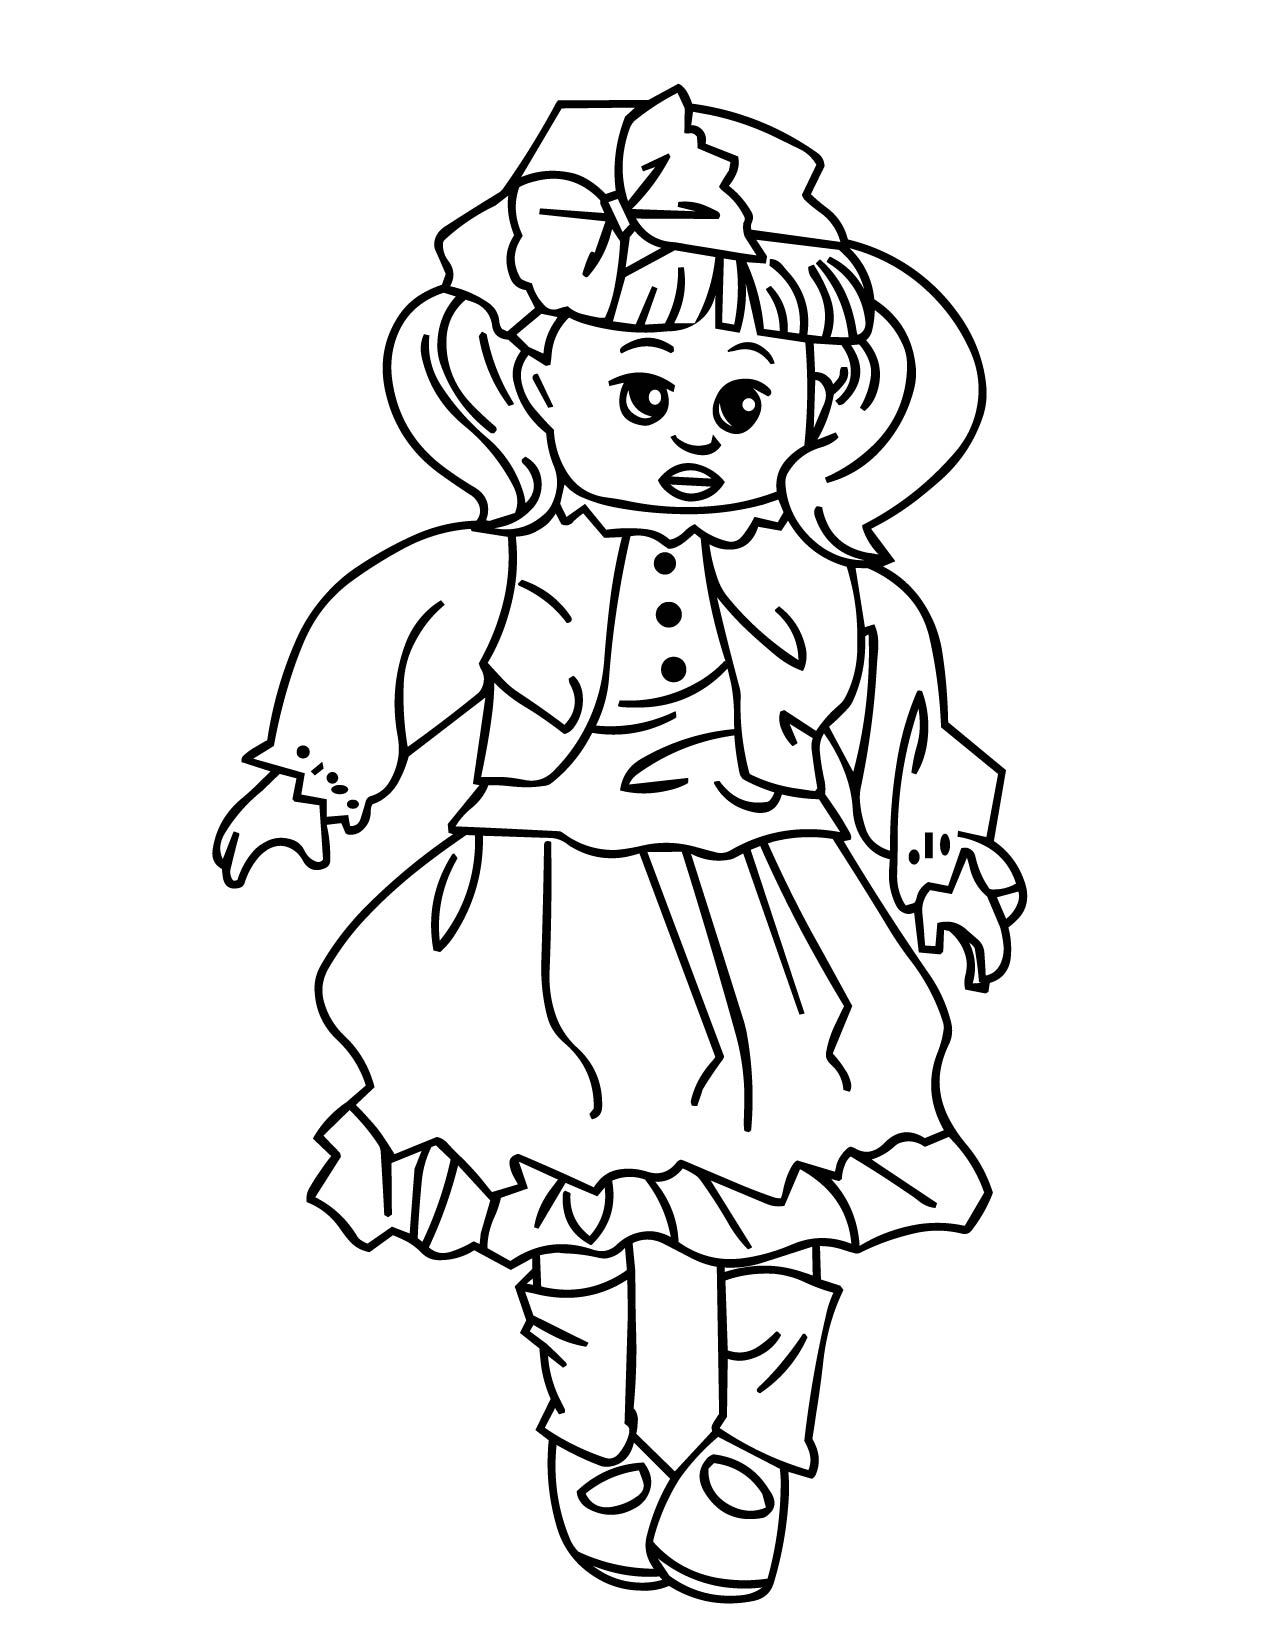 Doll Coloring Page Handipoints